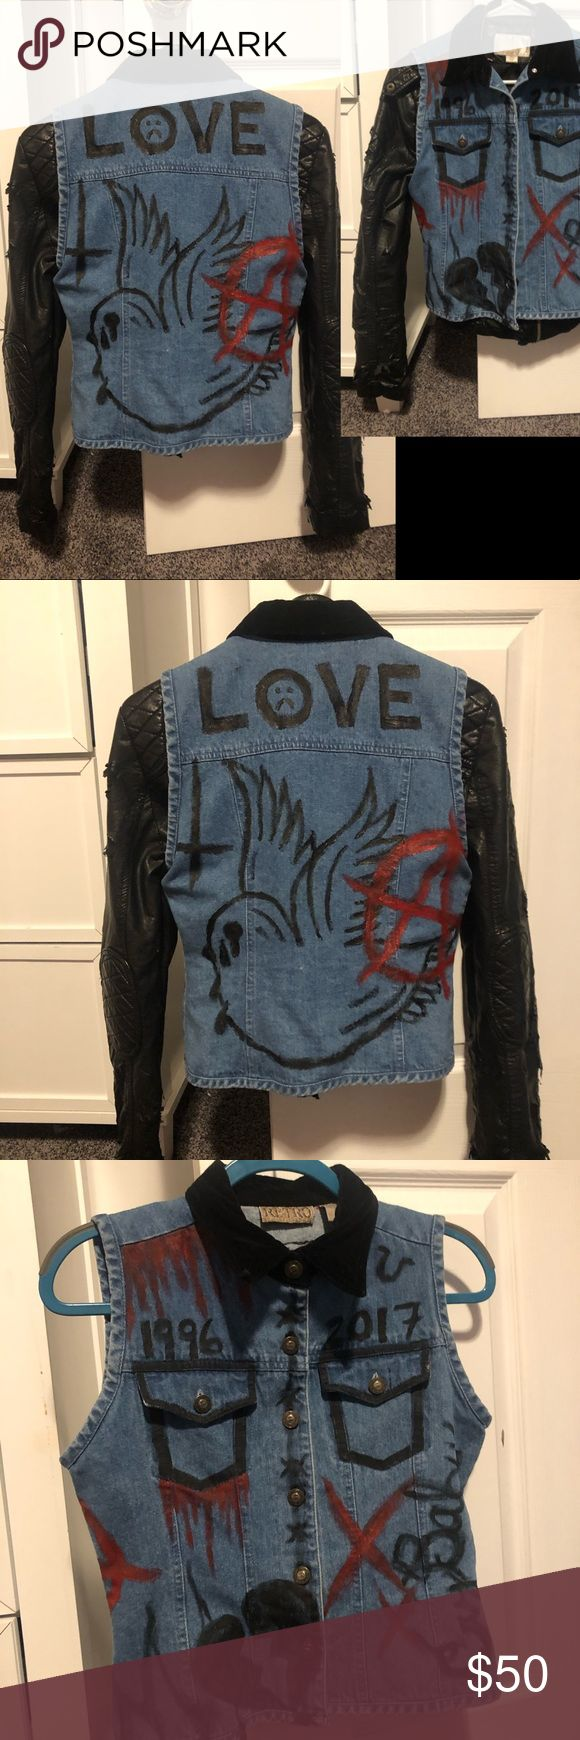 HAND PAINTED LIL PEEP DENIM VEST in 2020 Vintage denim